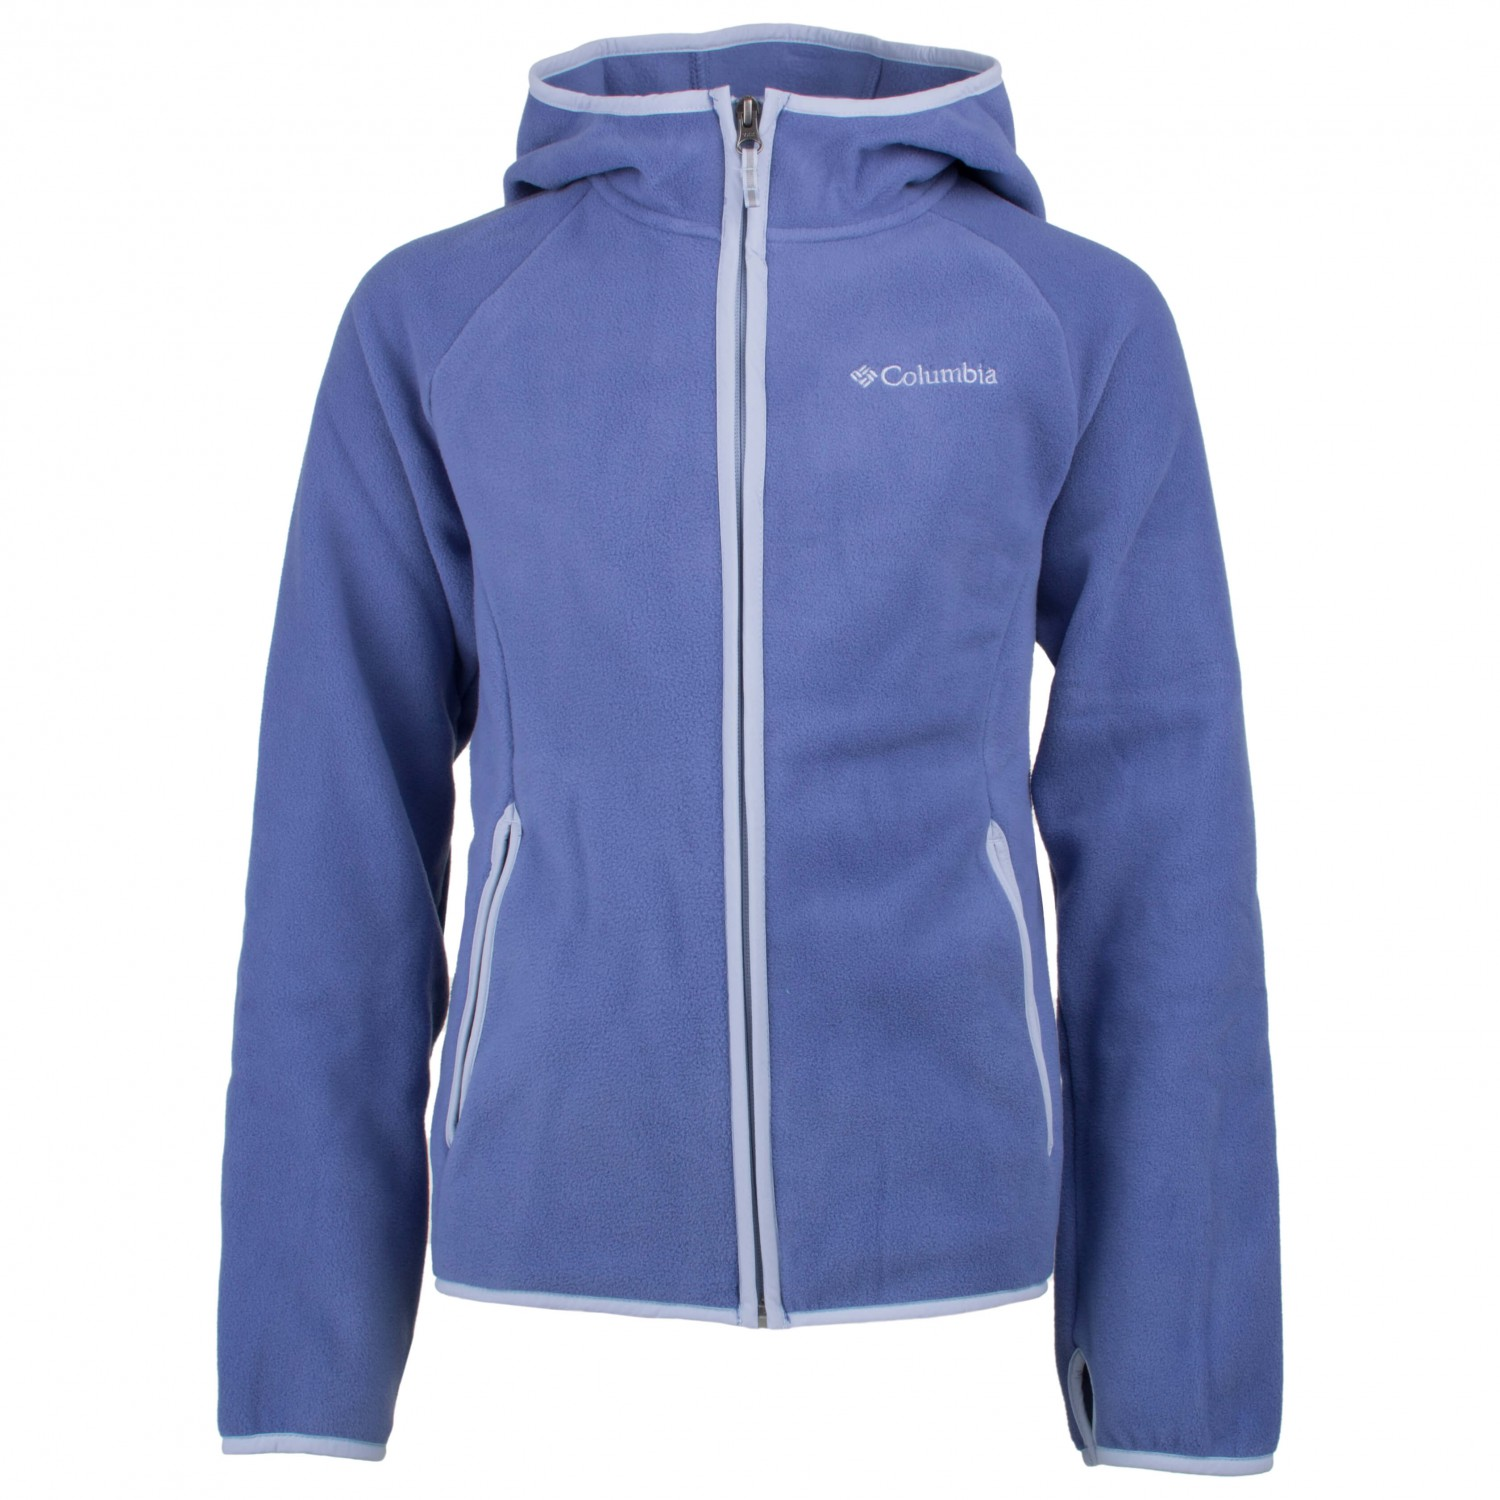 Online shopping from a great selection at Clothing Store. Columbia Women's Pacific Point Full Zip Hoodie Fleece Jacket and Sweaters.